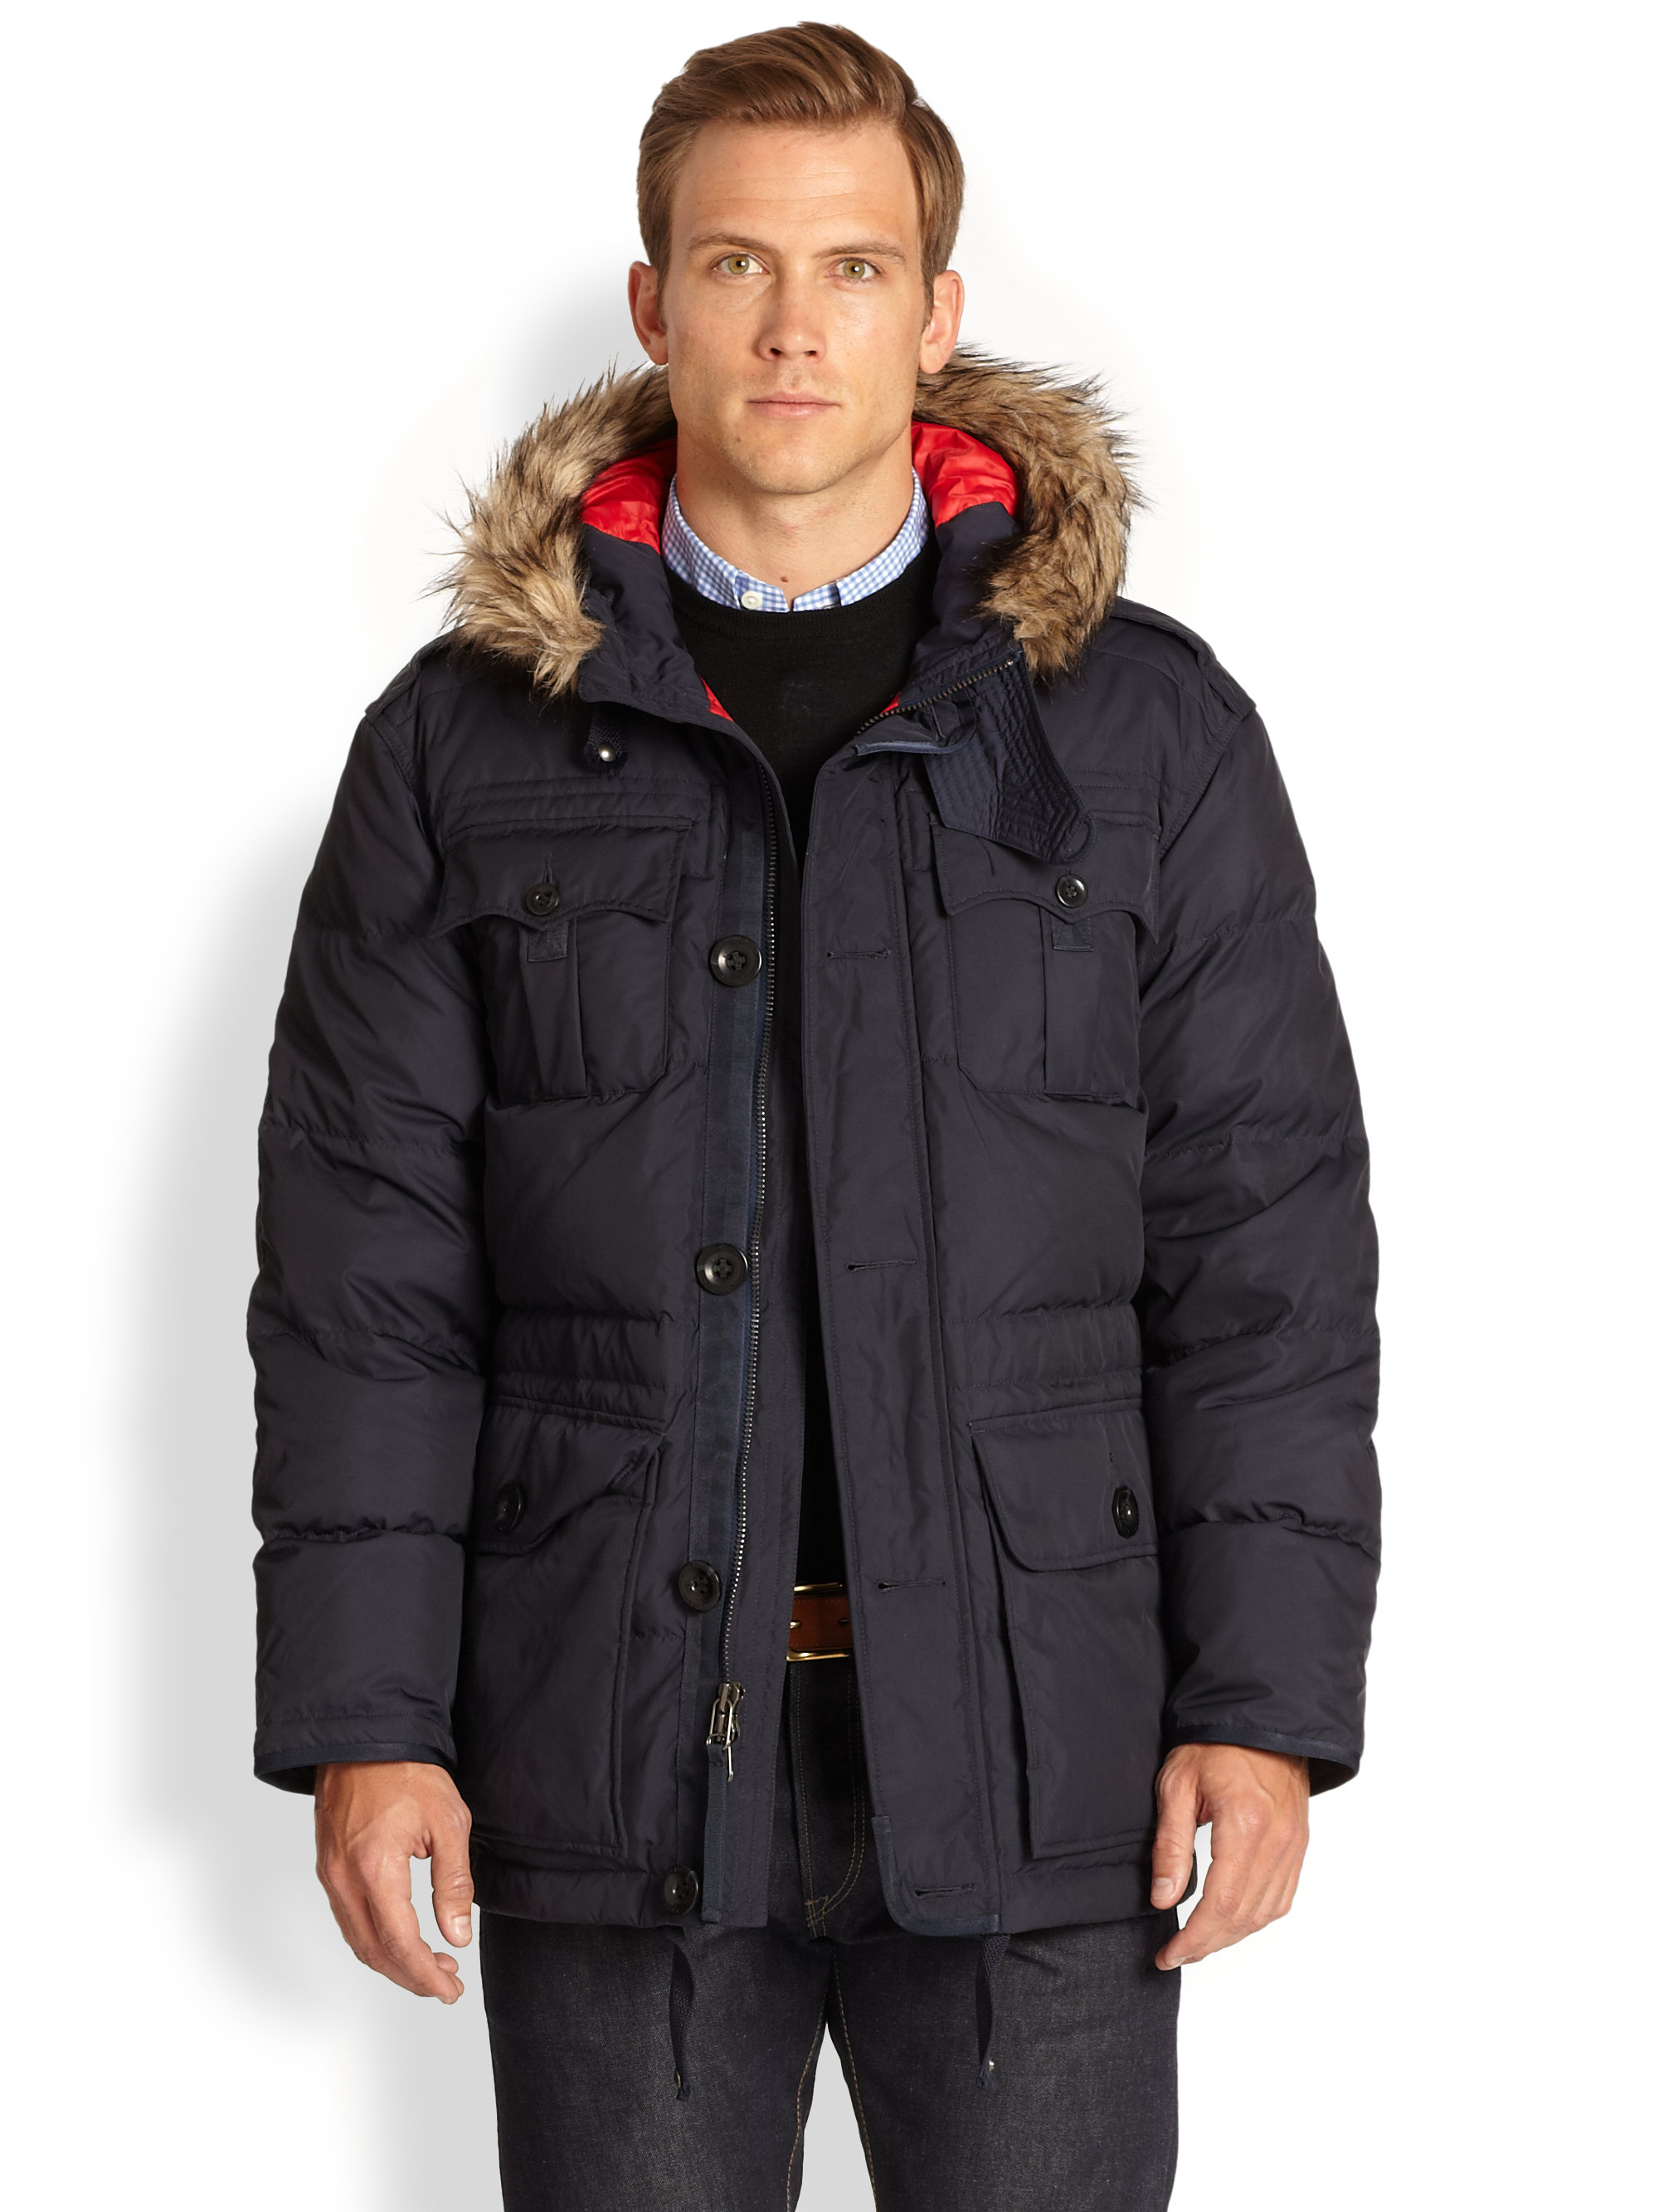 Long Parka Jacket